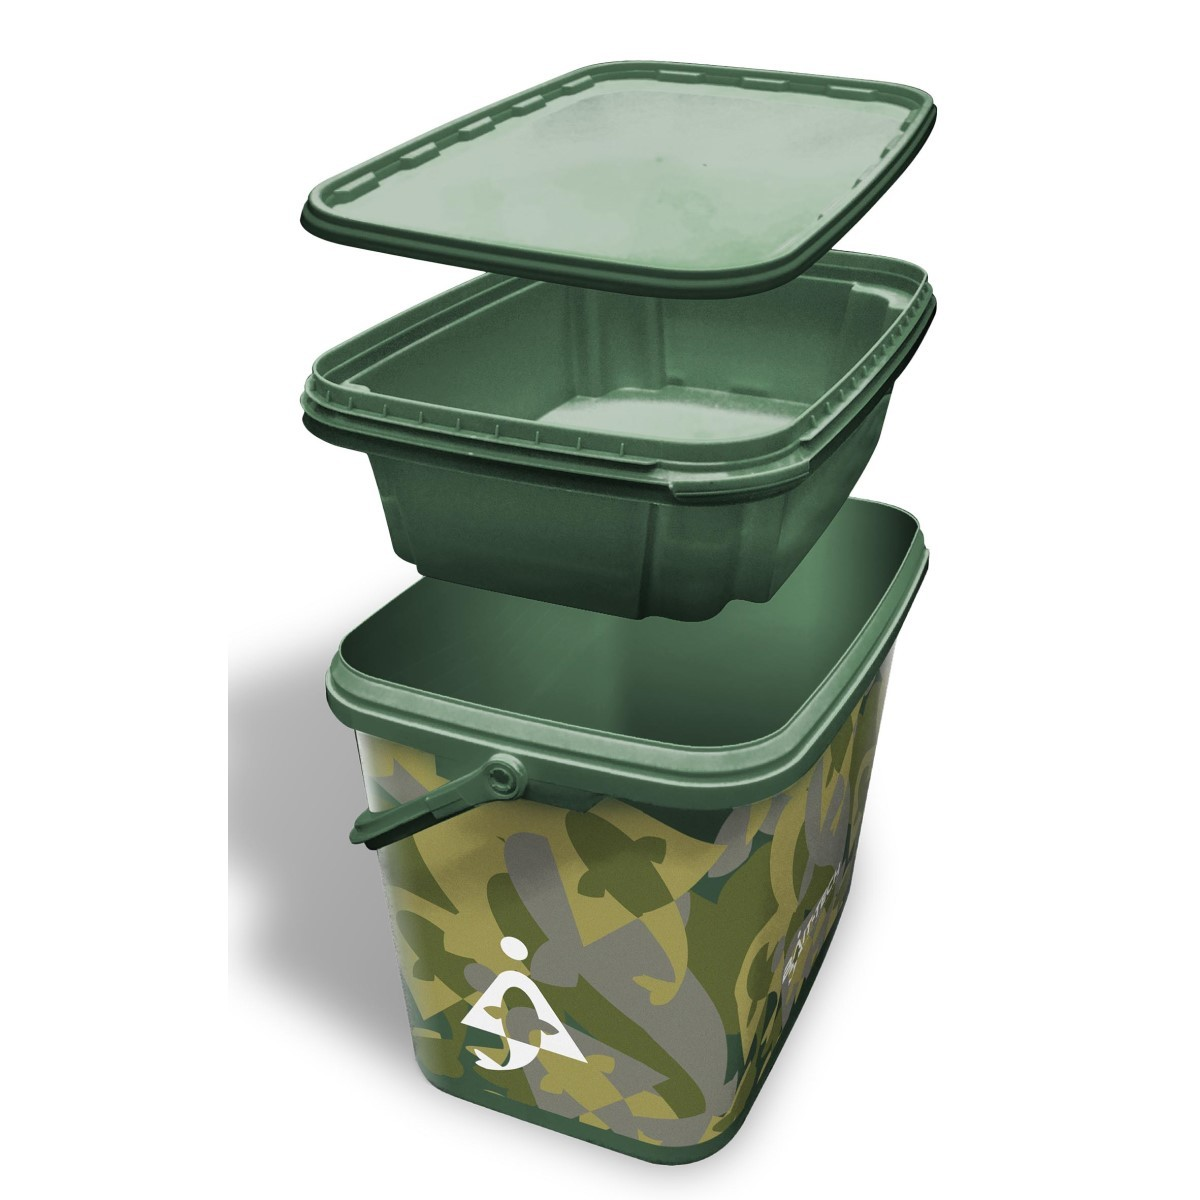 Bait-Tech Utility Camo Bucket with Insert Tray